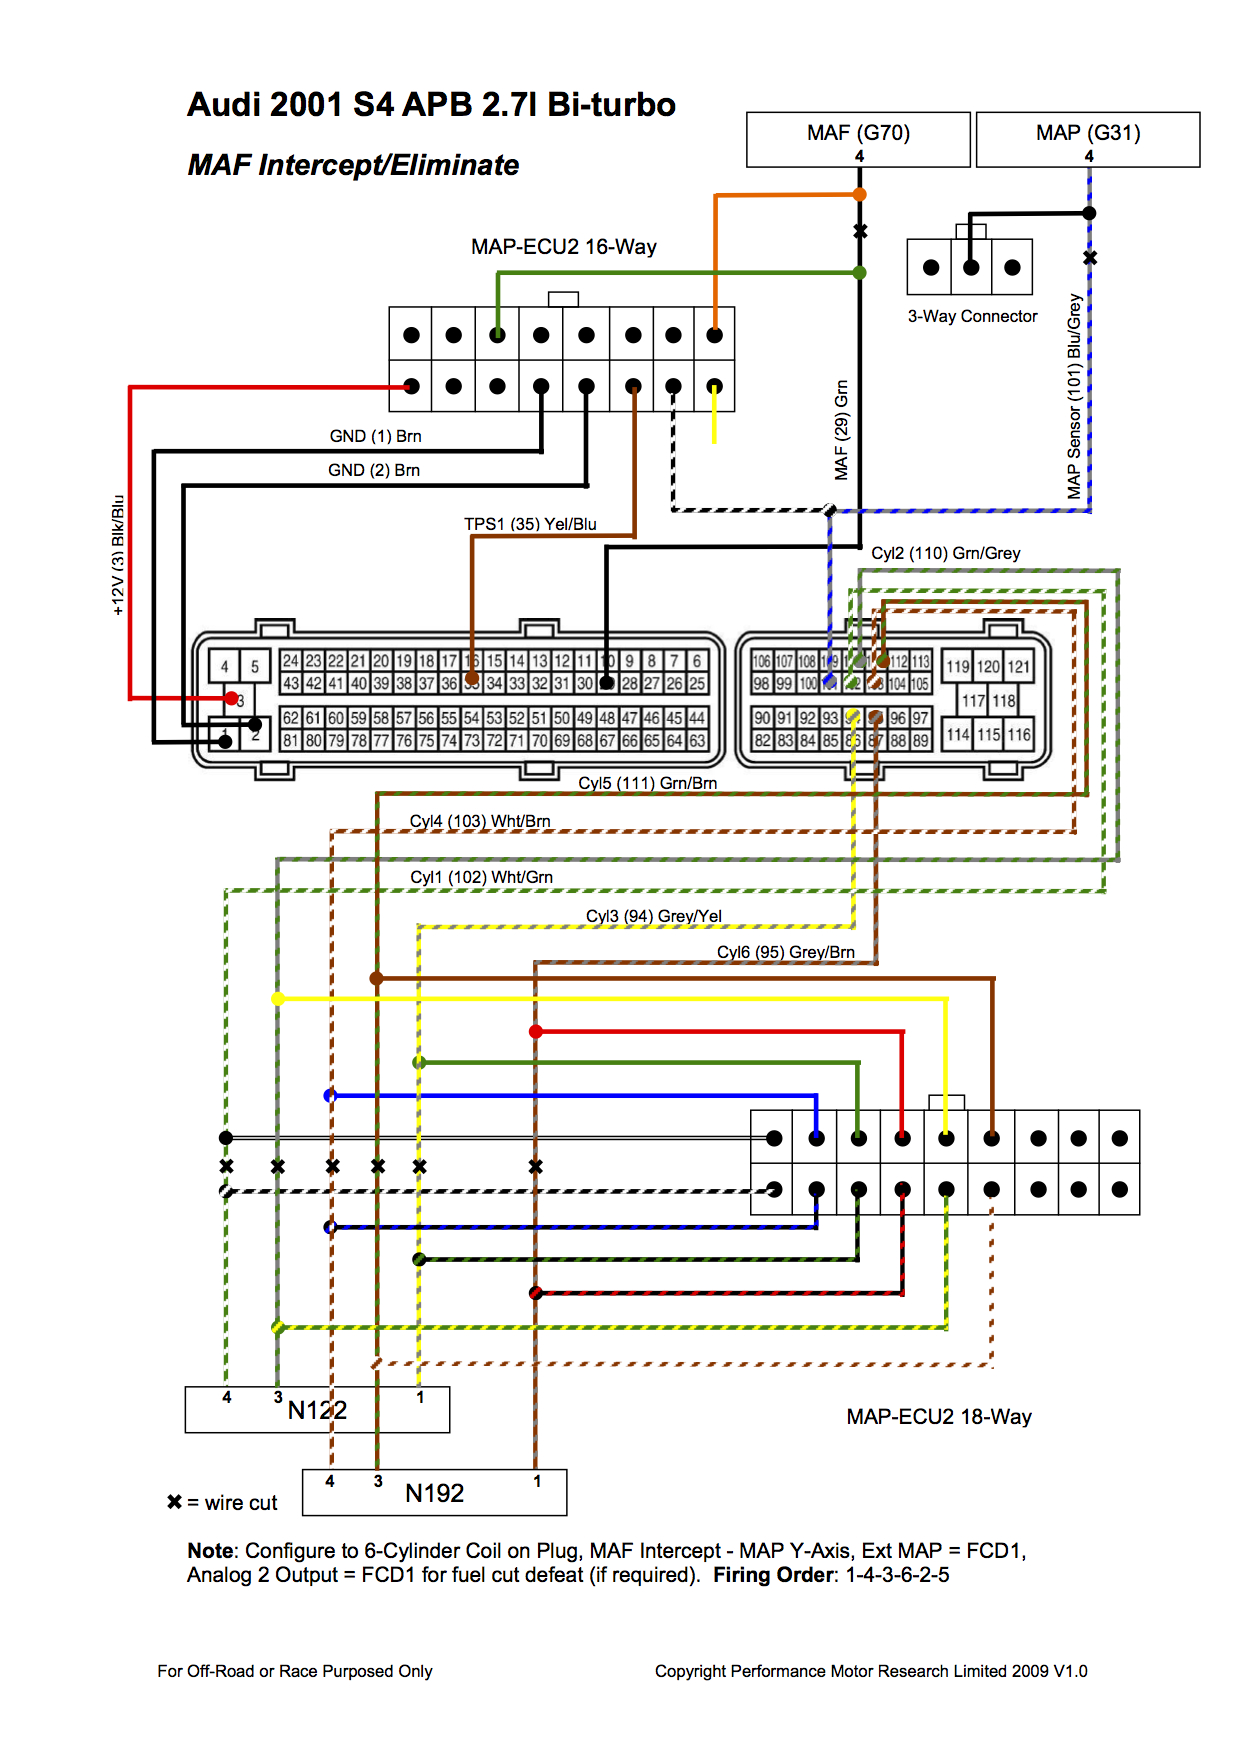 toyota v8 wiring diagram toyota wiring diagrams online toyota engine diagram pdf toyota wiring diagrams